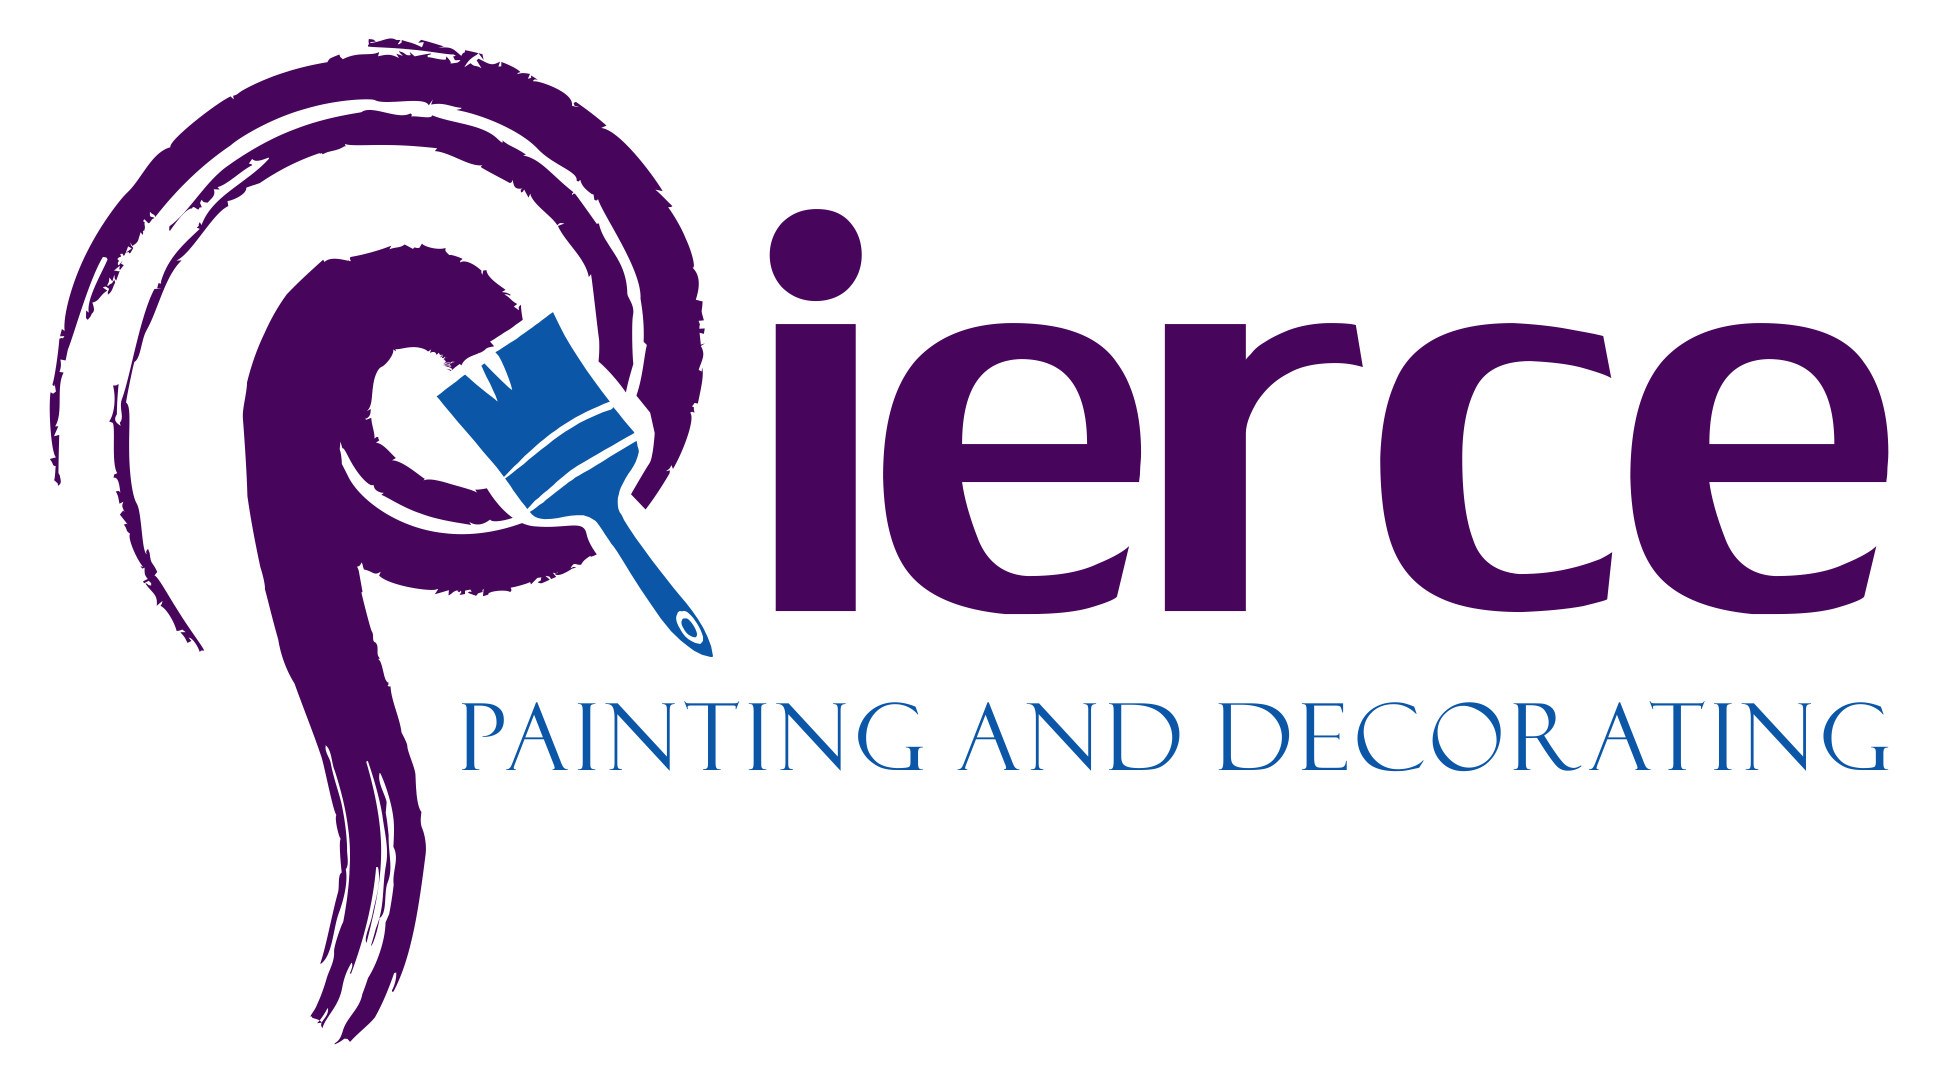 Pierce Painting and Decorating